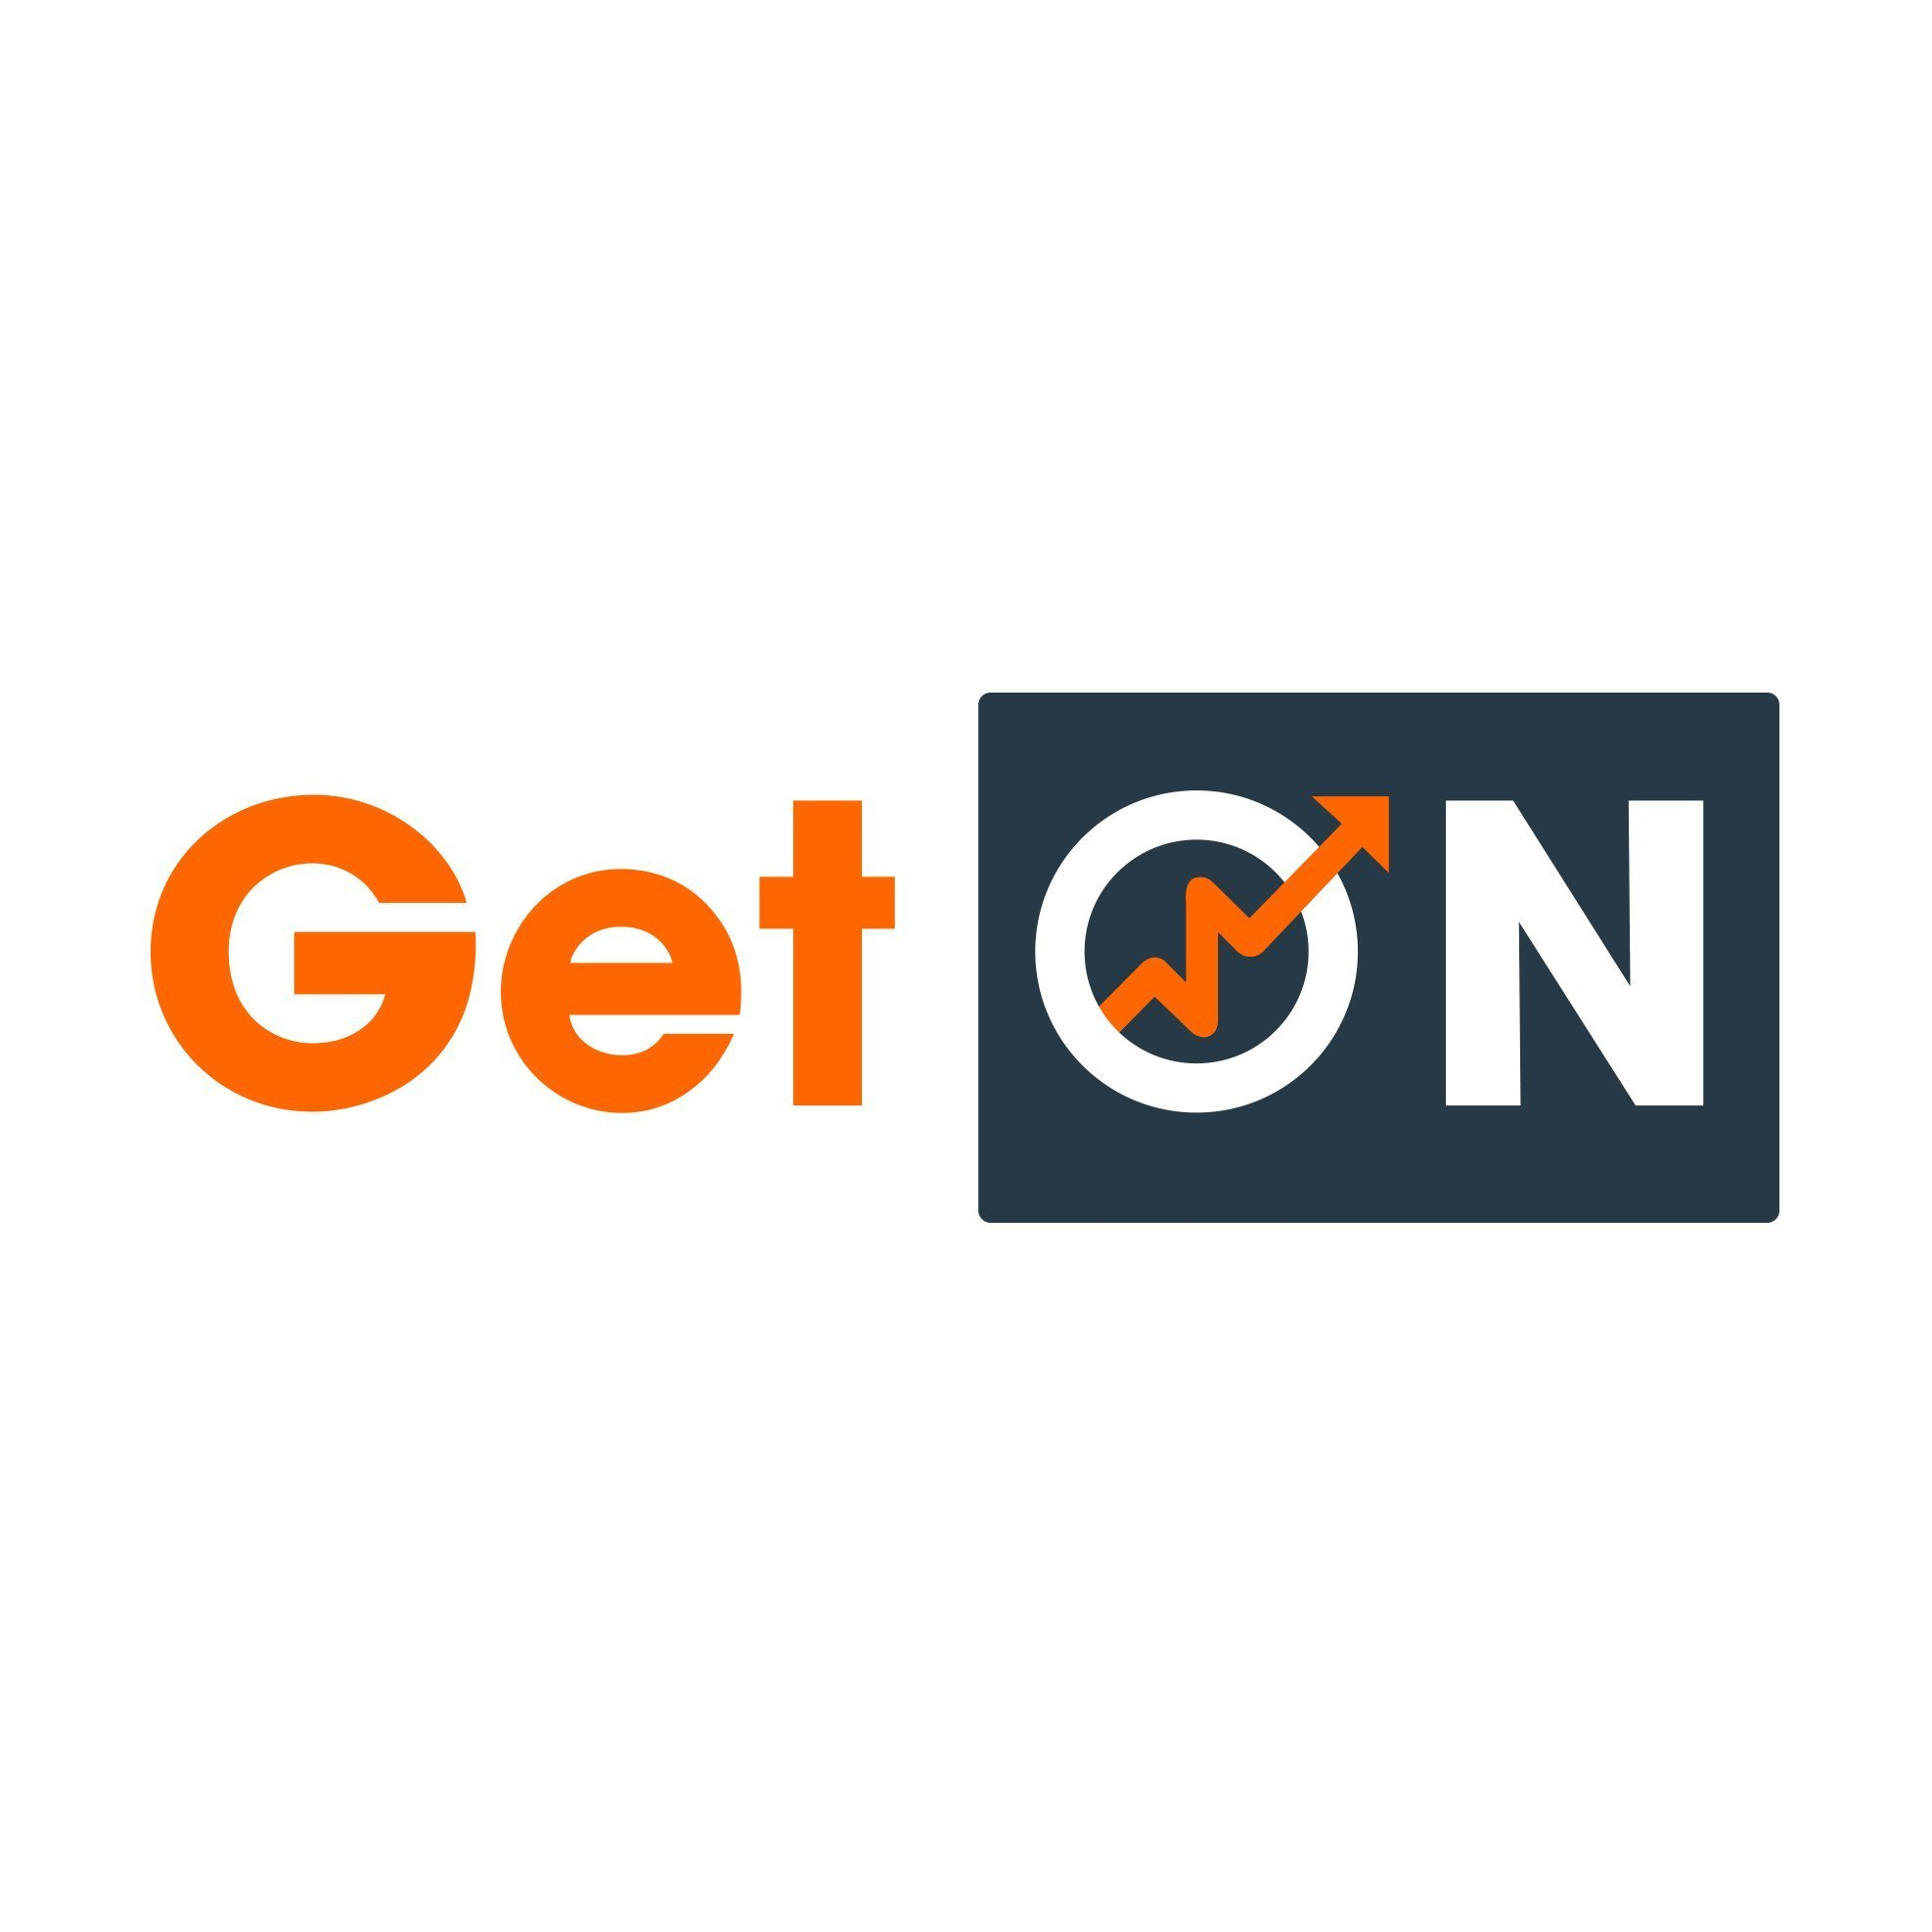 GetON Infotech Private Limited